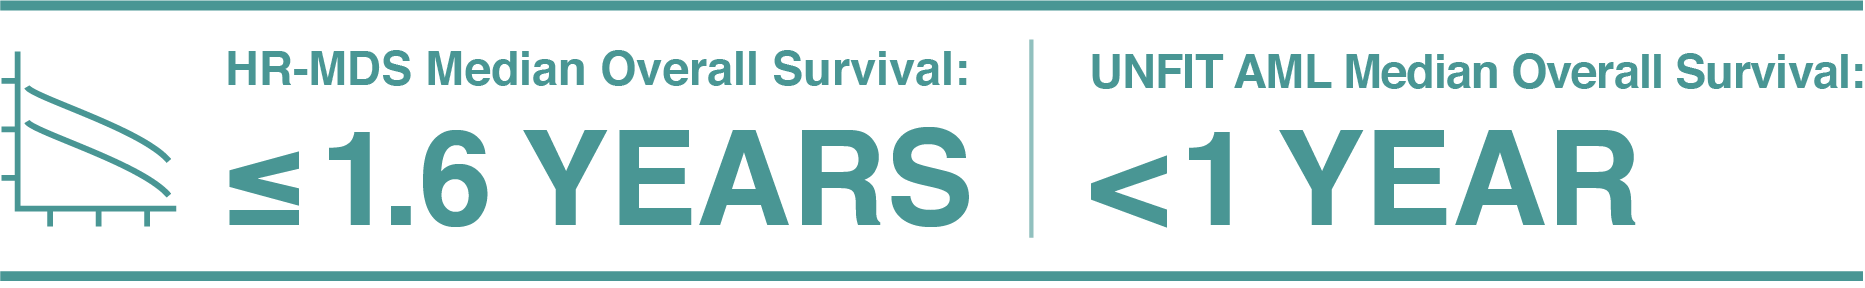 HR-MDS Median Overall Survival ≤ 1.6 years; UNFIT AML Median Overall Survival <1 year